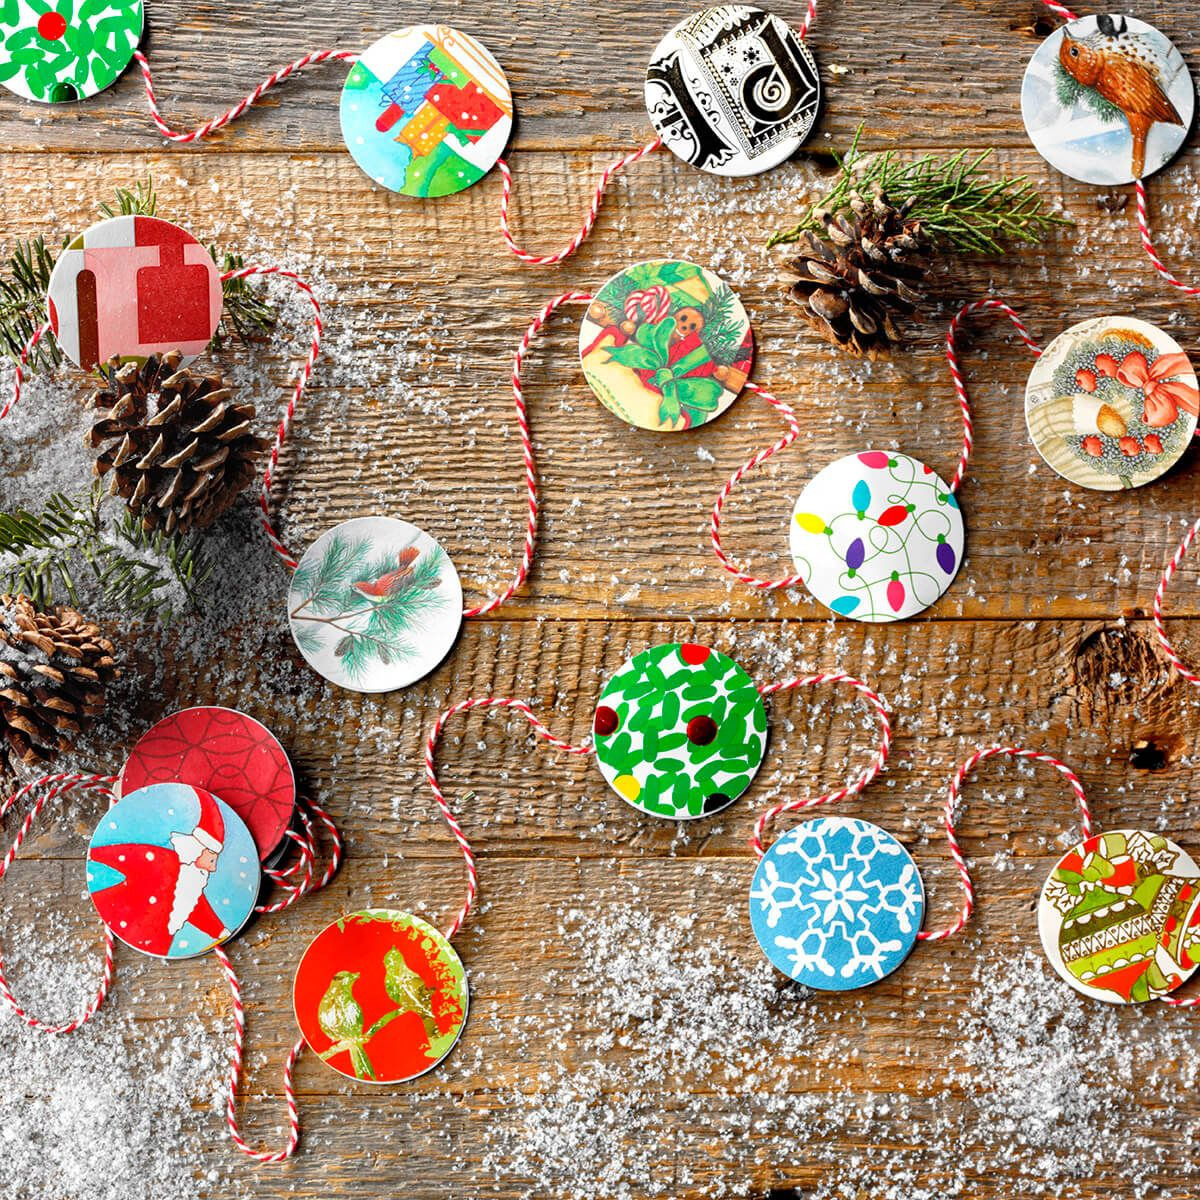 10 Gorgeous Holiday Crafts To Make Using Old Christmas